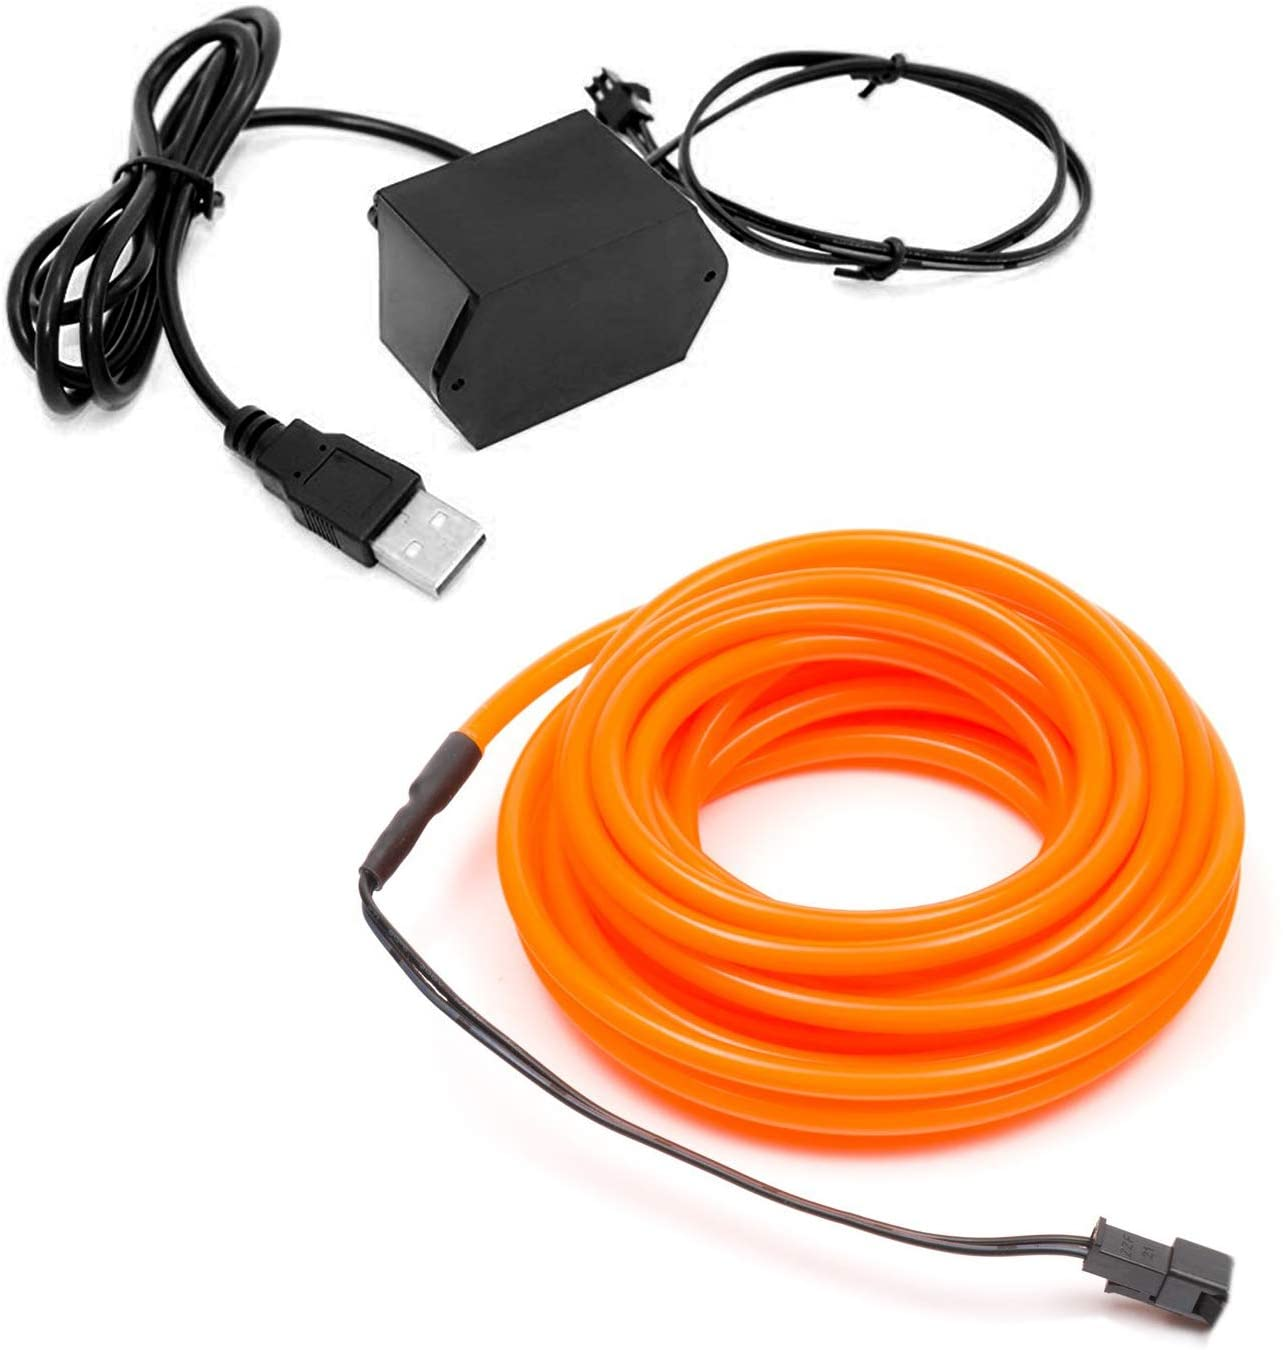 1-Pack 10m/32.8ft Orange Neon LED Light Glow EL Wire - 3.2 mm Thick - Powered by 12V USB Port - Craft Neon Wire String Light for DIY Project Costume Accessories Cosplay